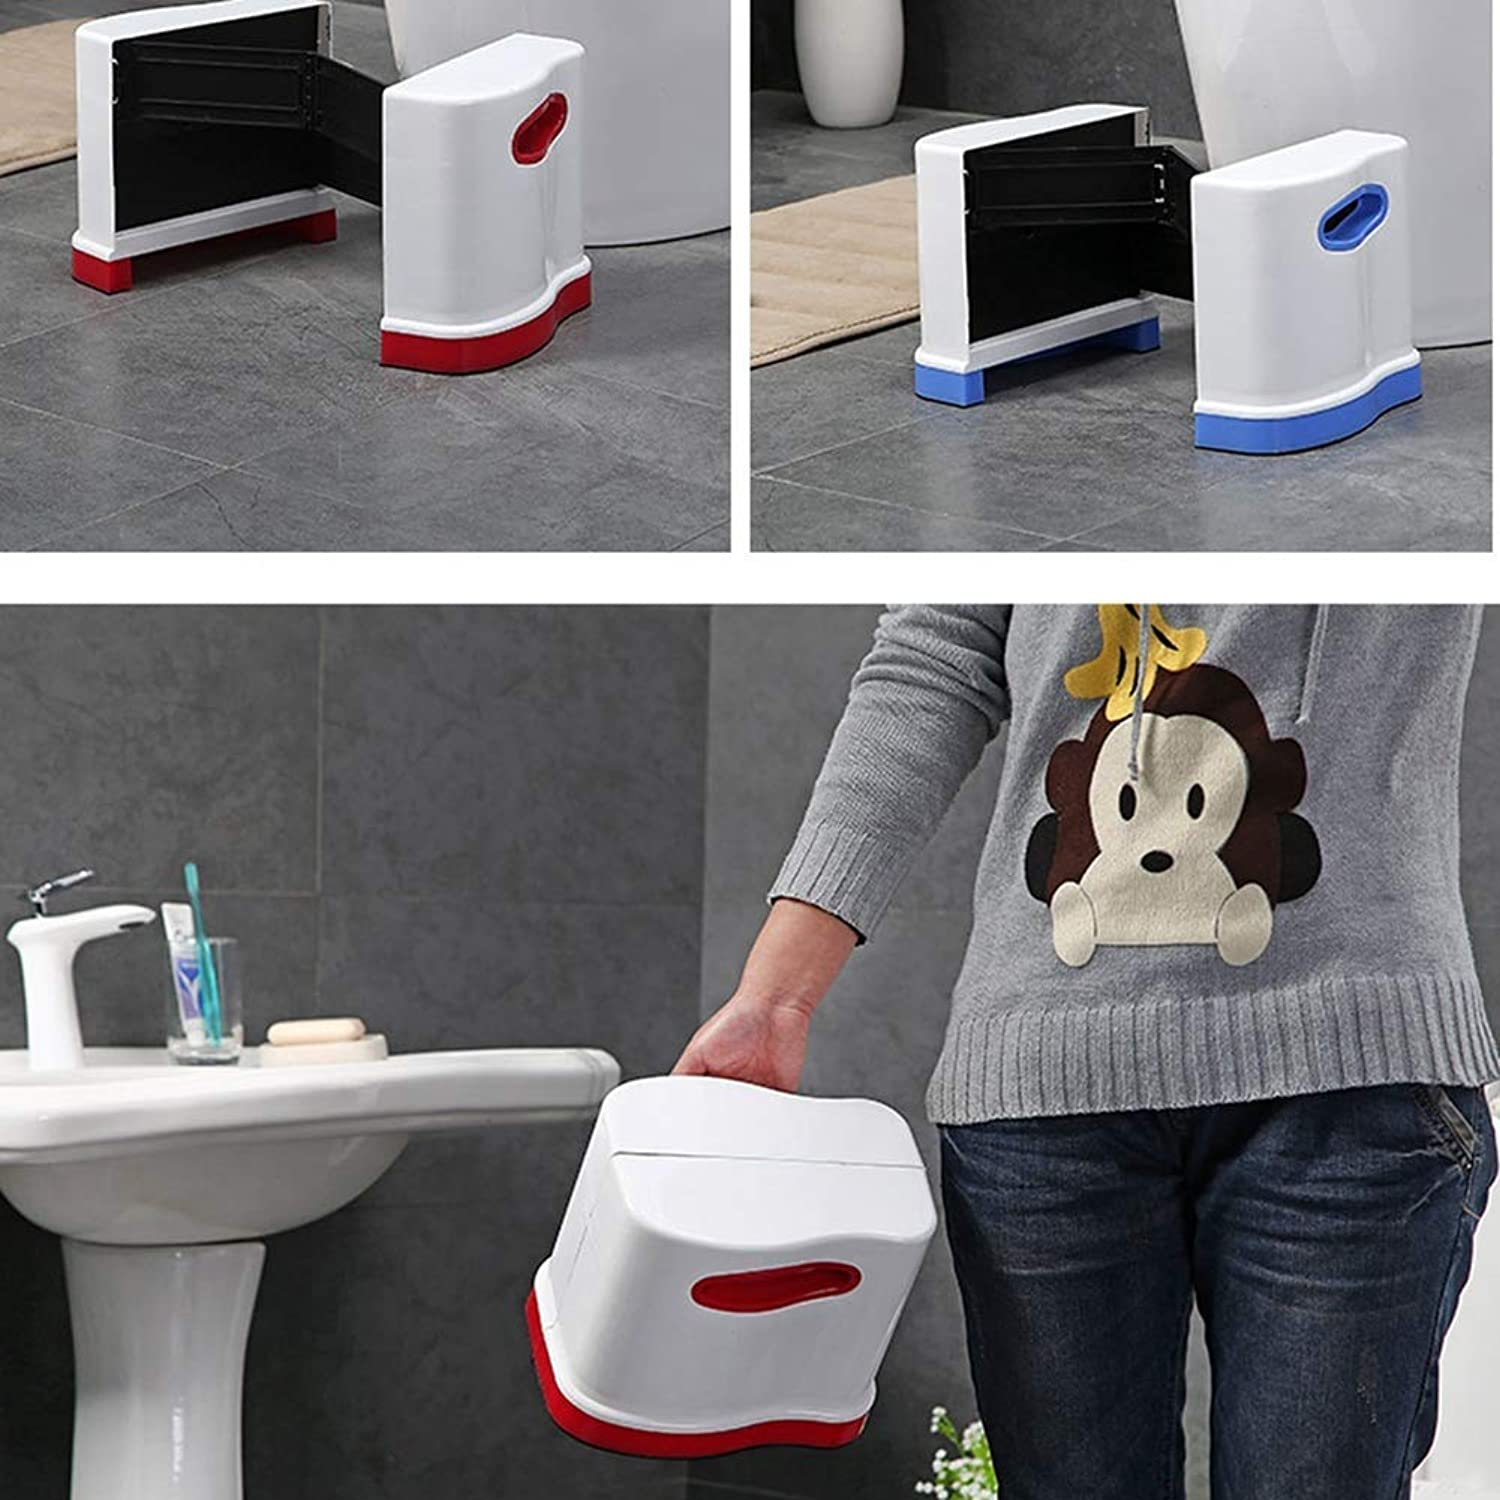 BBG Fashion Creative Small Furniture Anti-Slip Stool Squatting Toilet Stool Plastic Adjustable - Suitable for Families to Relieve Constipation Acne Multifunction Household Creative,White+bluee,Large